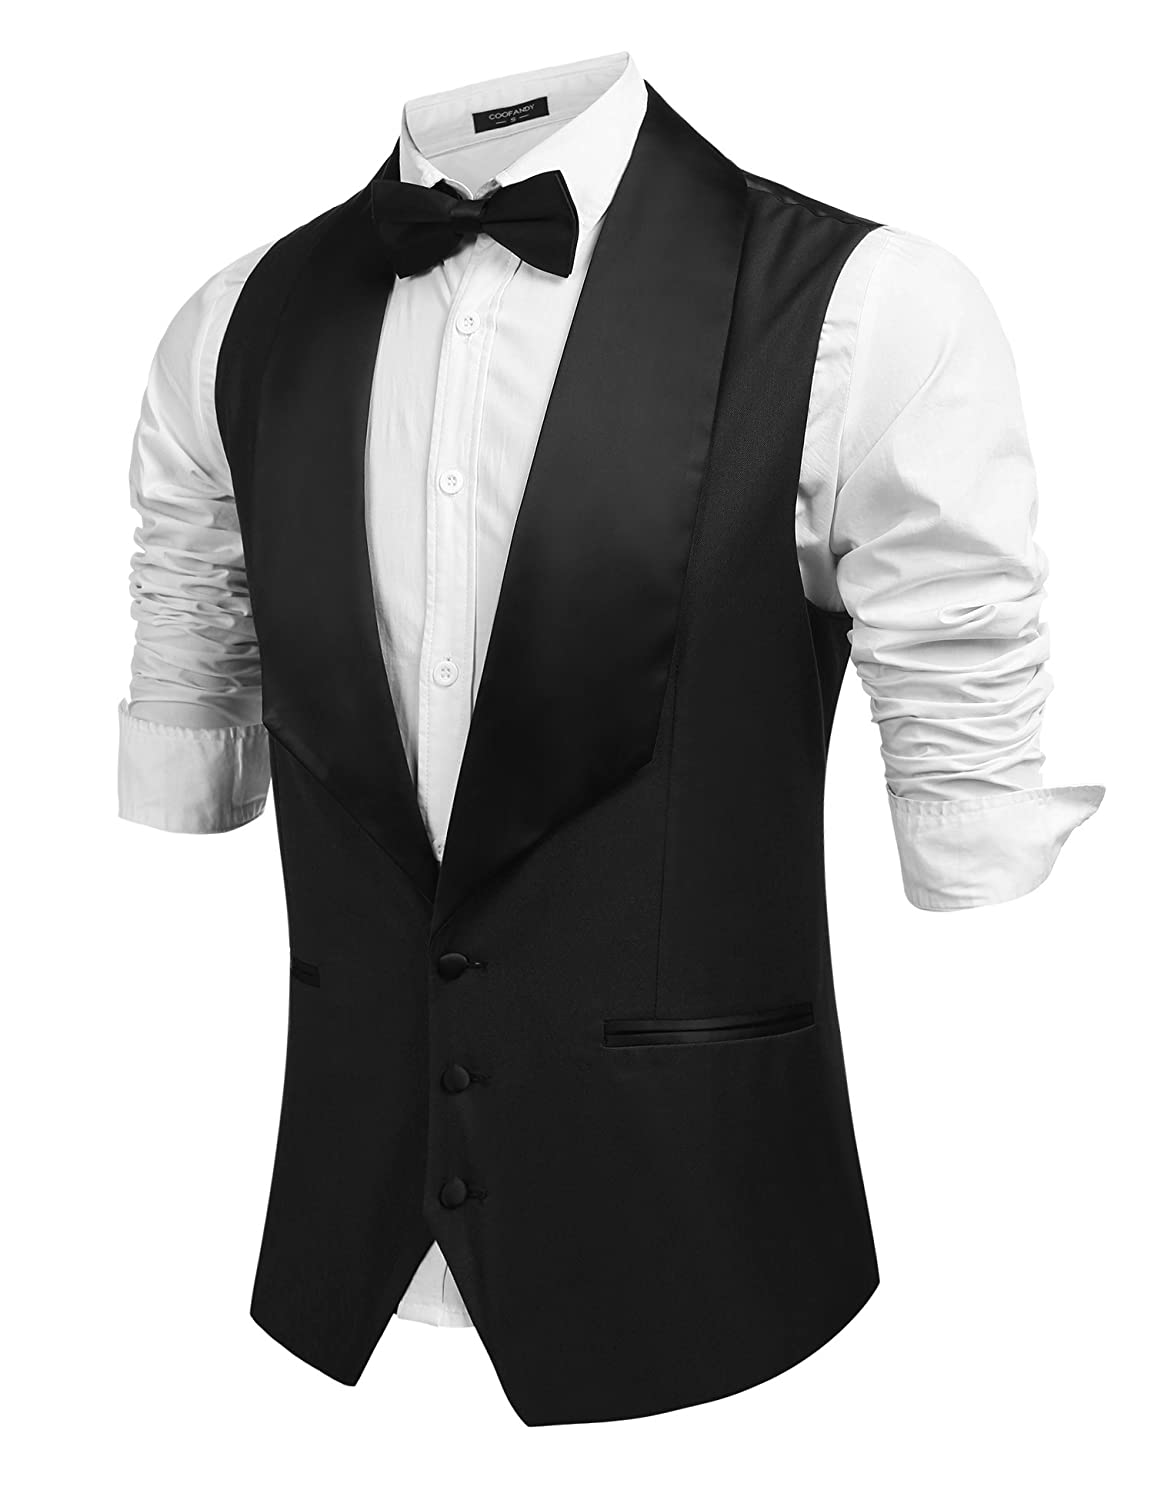 1920s Style Mens Vests Coofandy Mens V-Neck Slim Fit Dress Suit Sleeveless Vest Waistcoat $31.99 AT vintagedancer.com